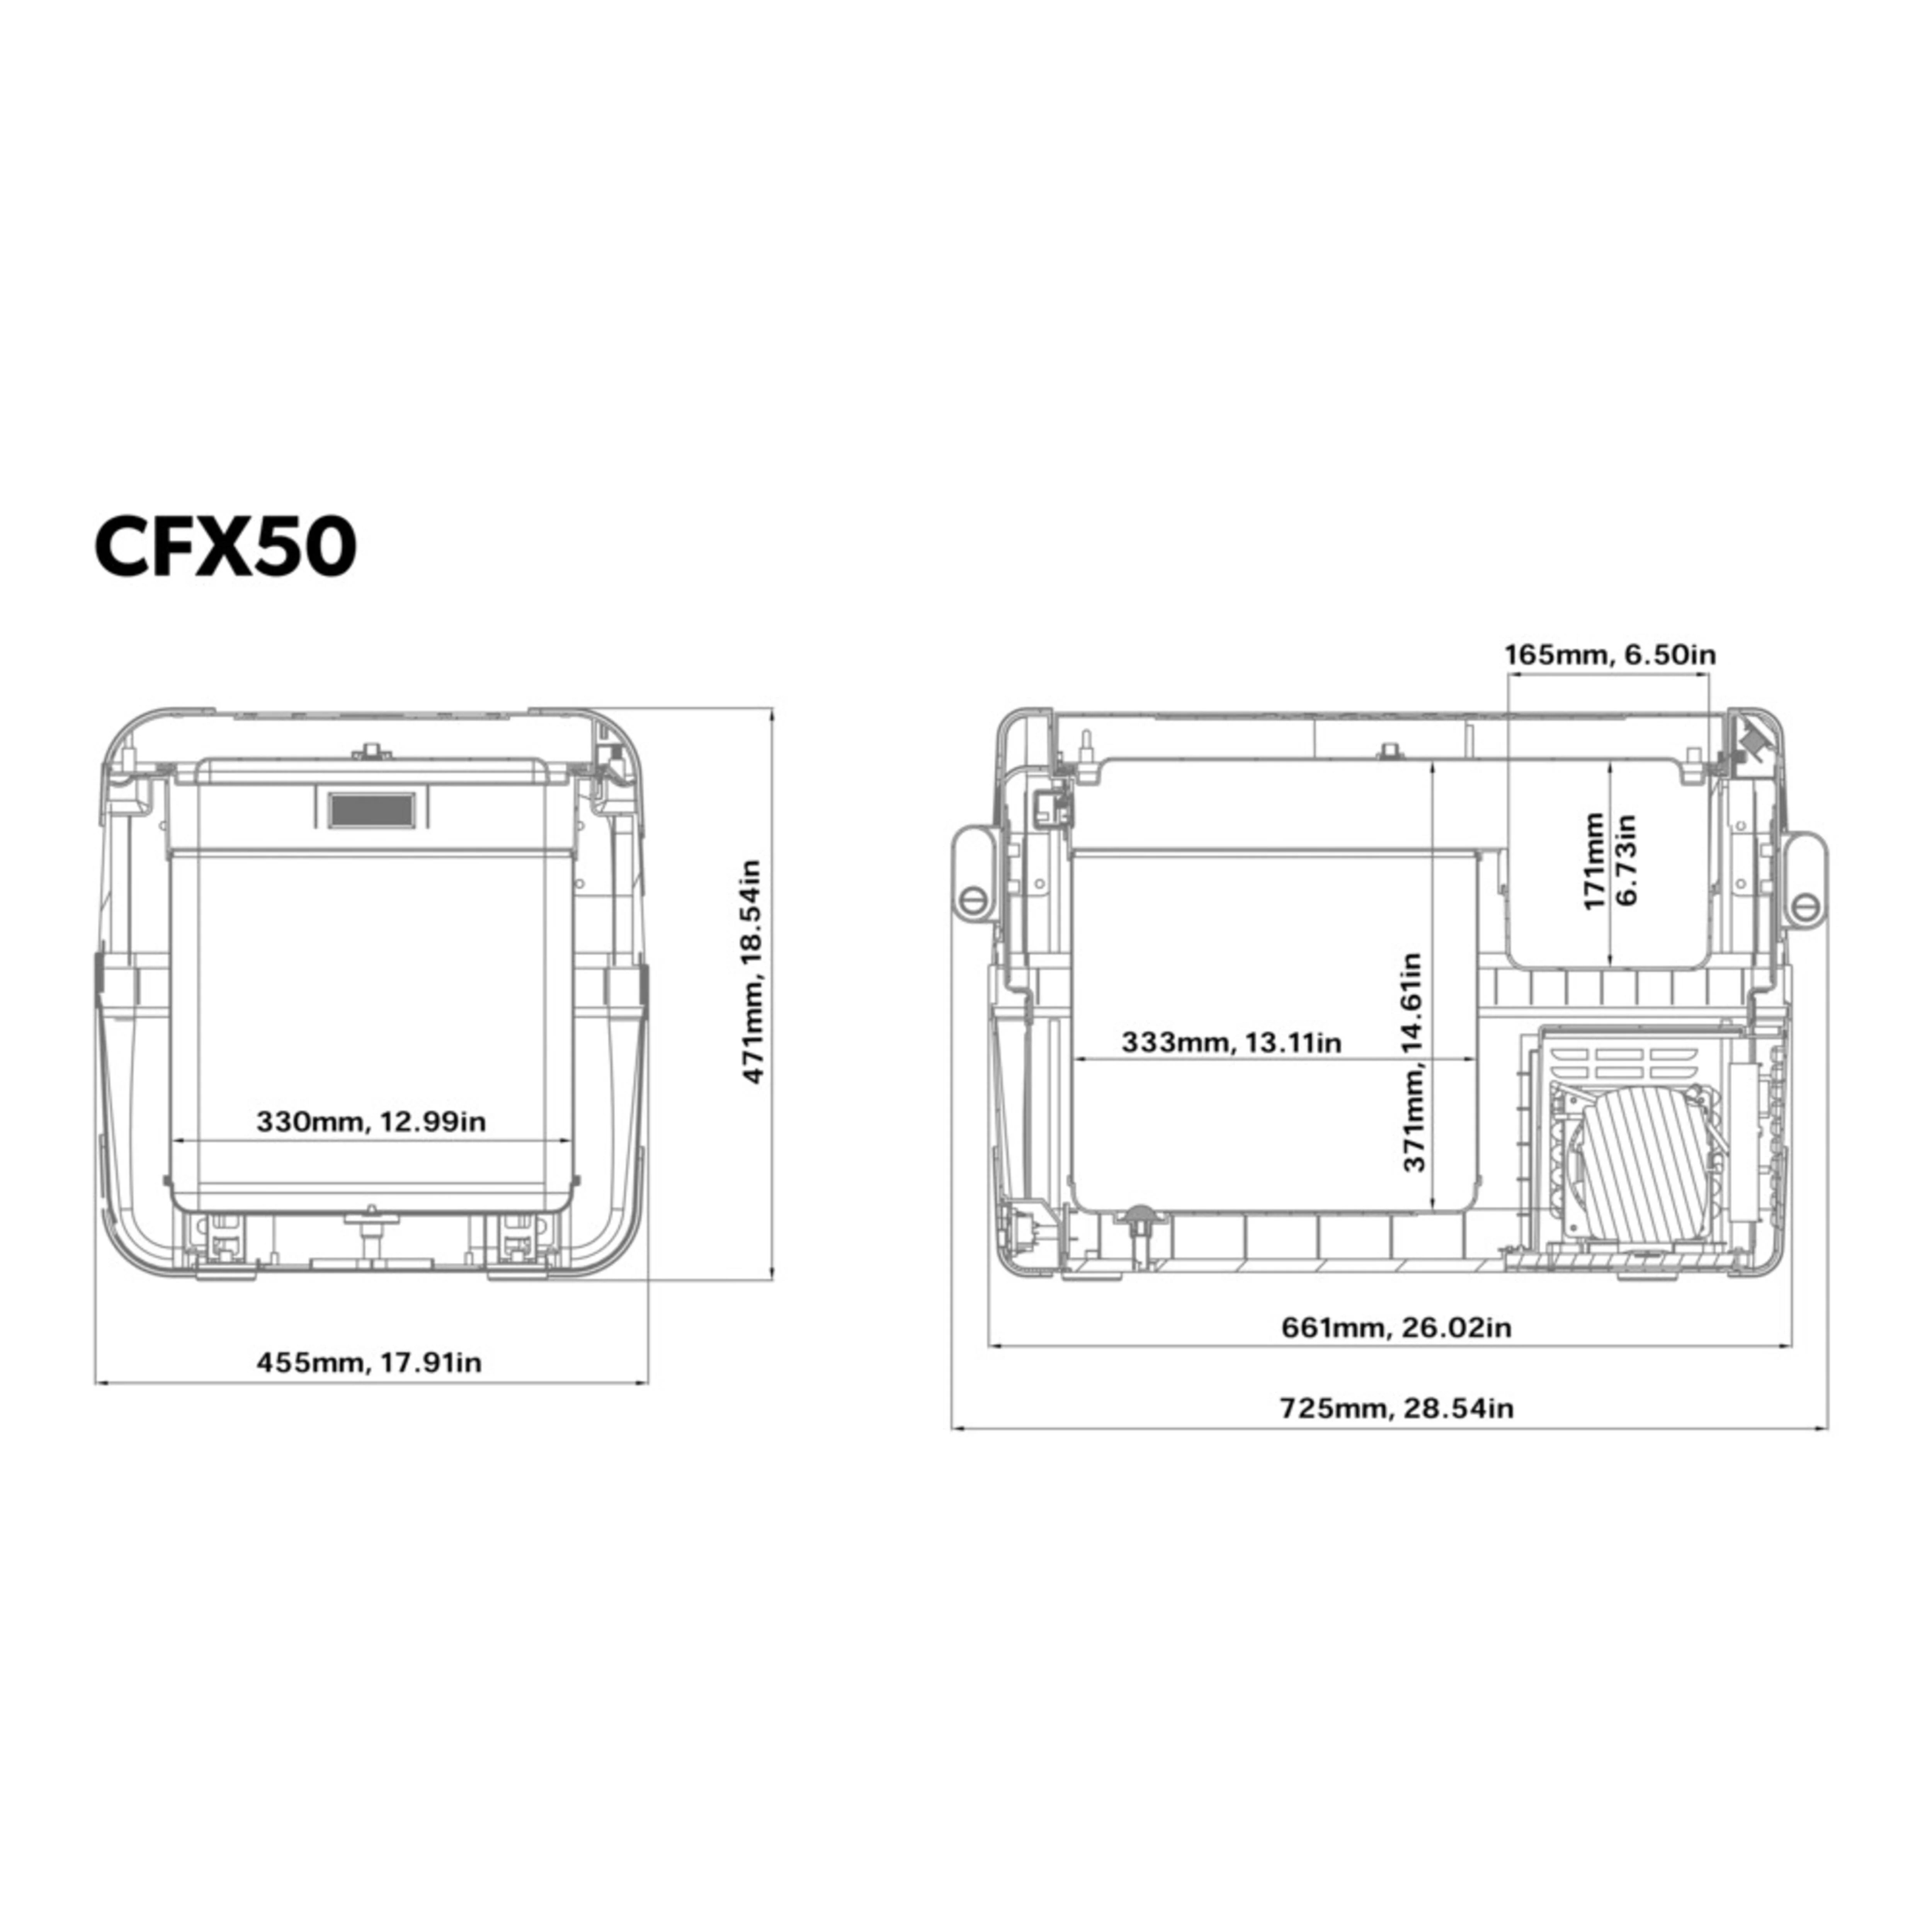 small resolution of cfx 50w dimensions